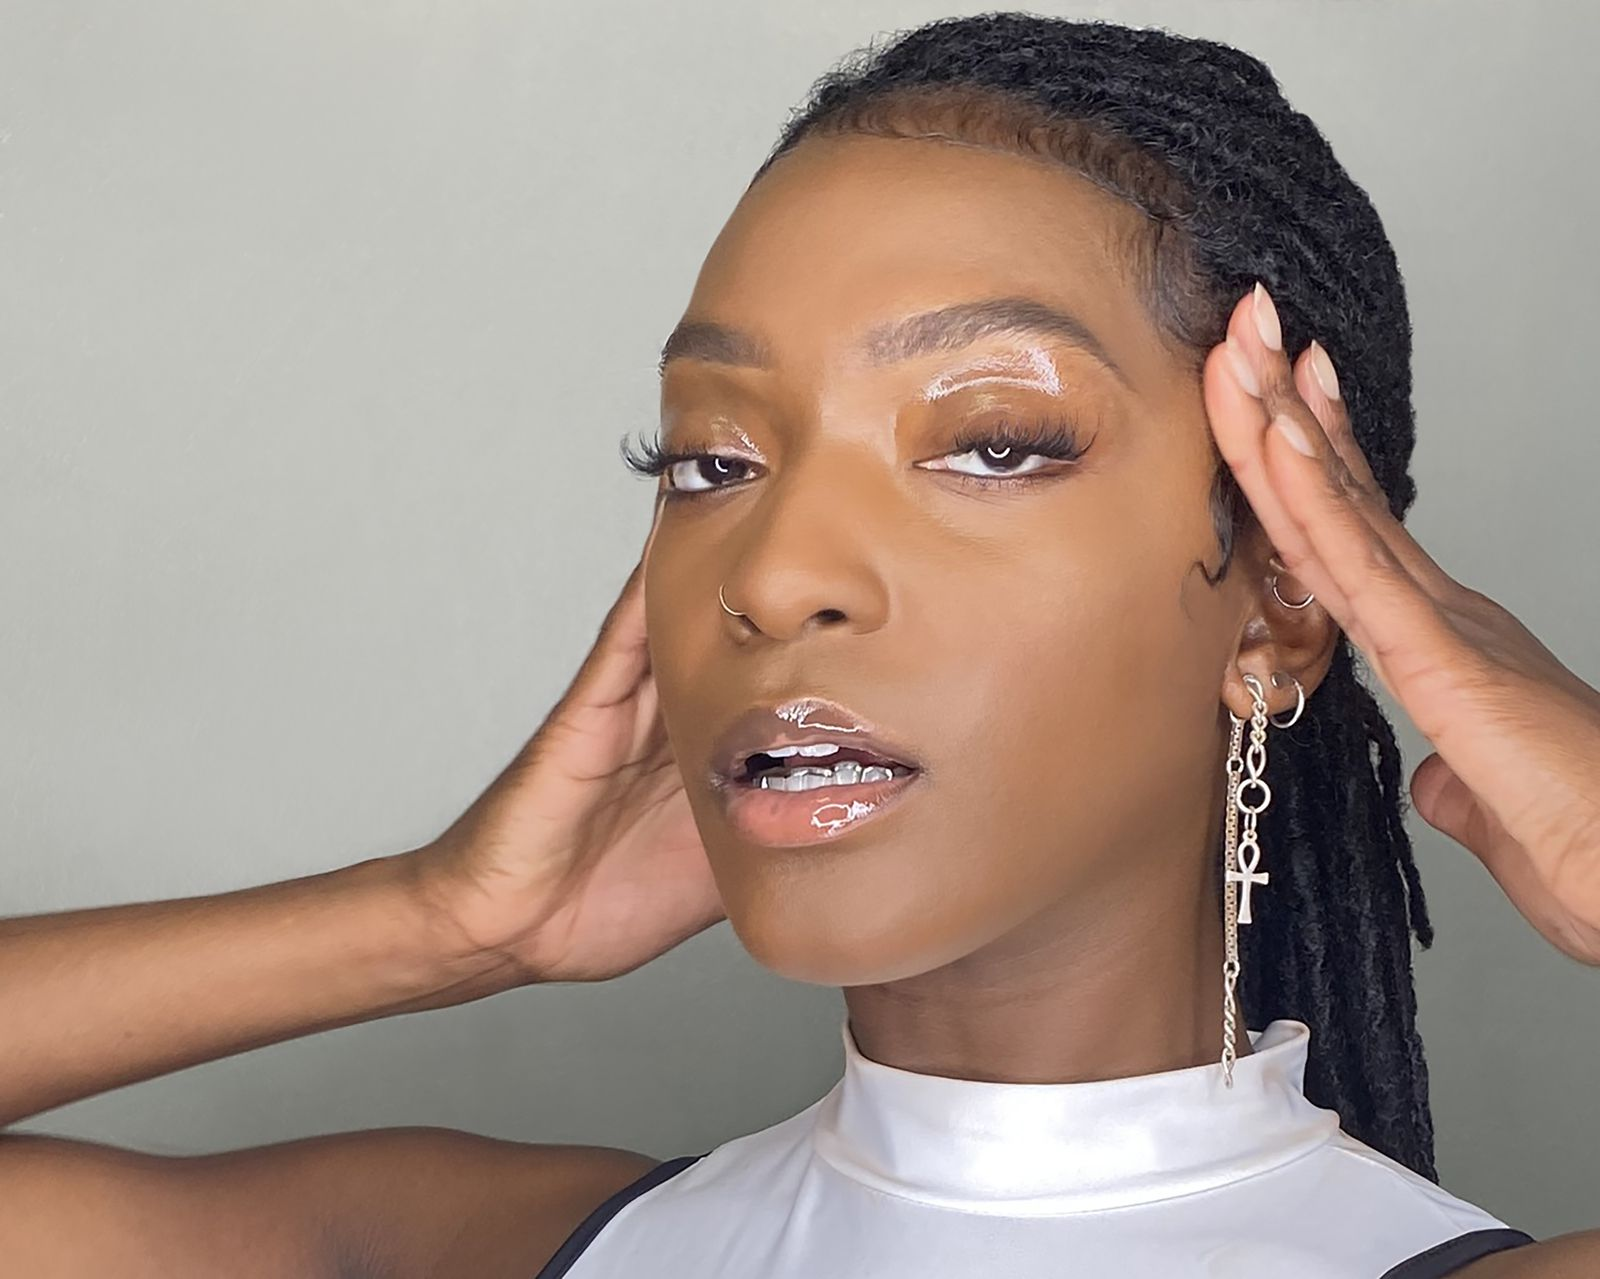 CHECK POP'N'B SONGSTRESS 'DEJA' AND HER SINGLE 'CONTROL'